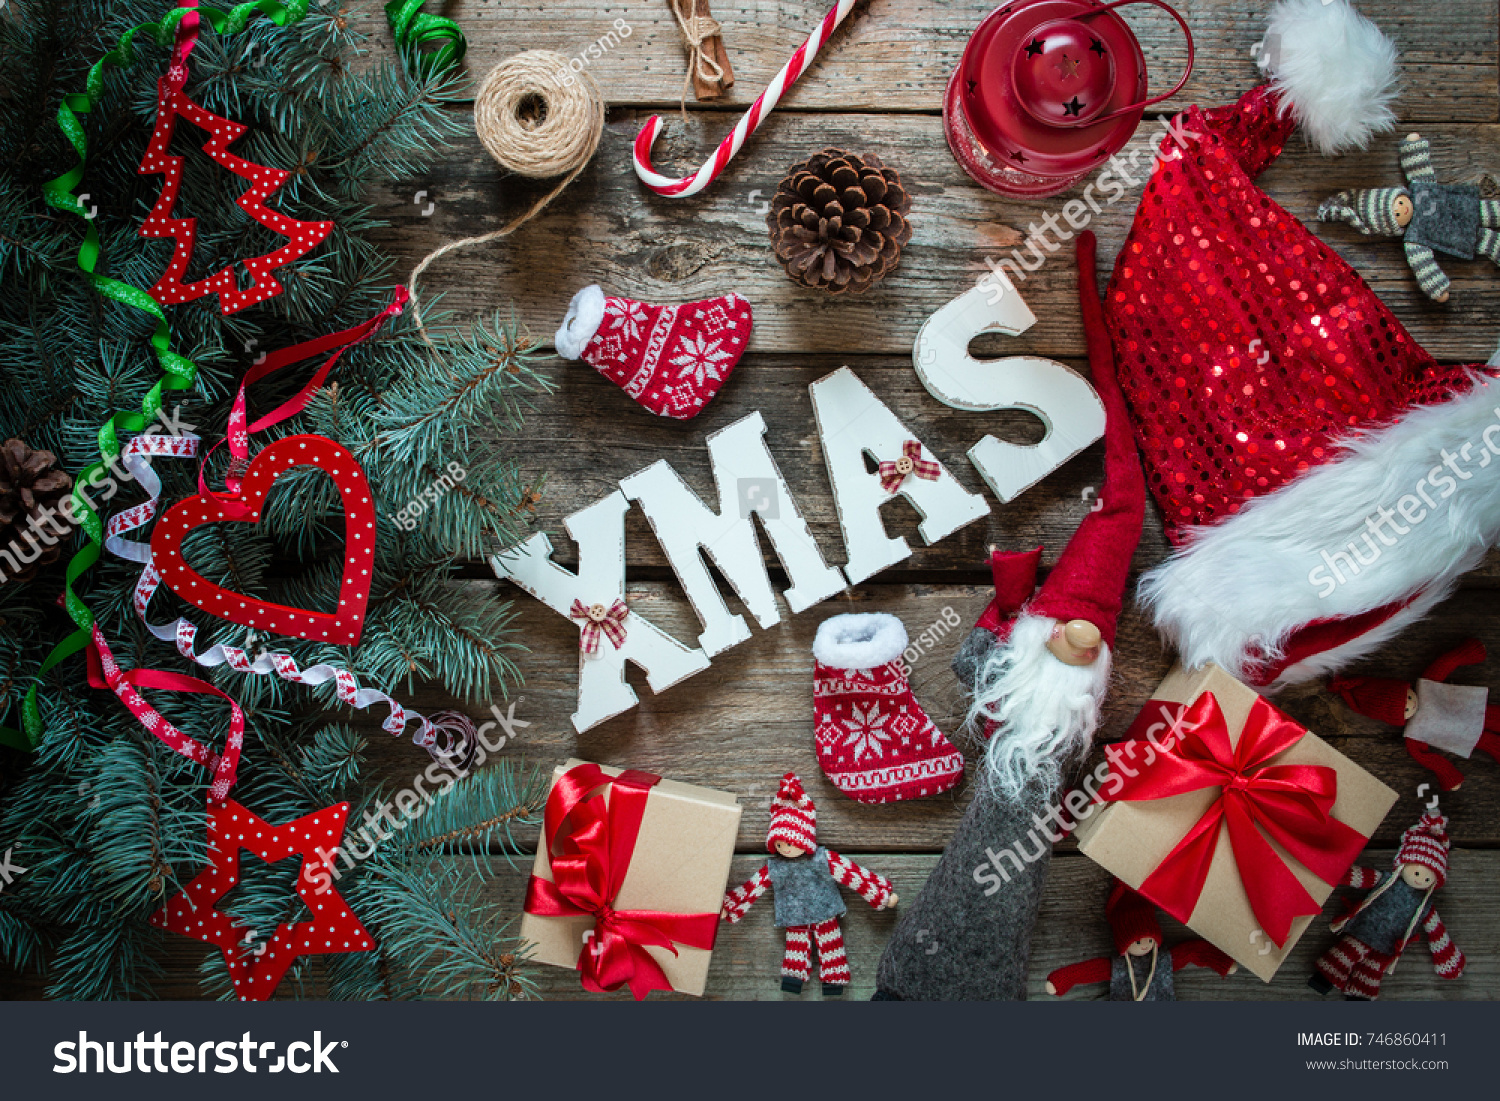 Merry Xmas Gifts Symbols Christmas Gifts Stock Photo Edit Now